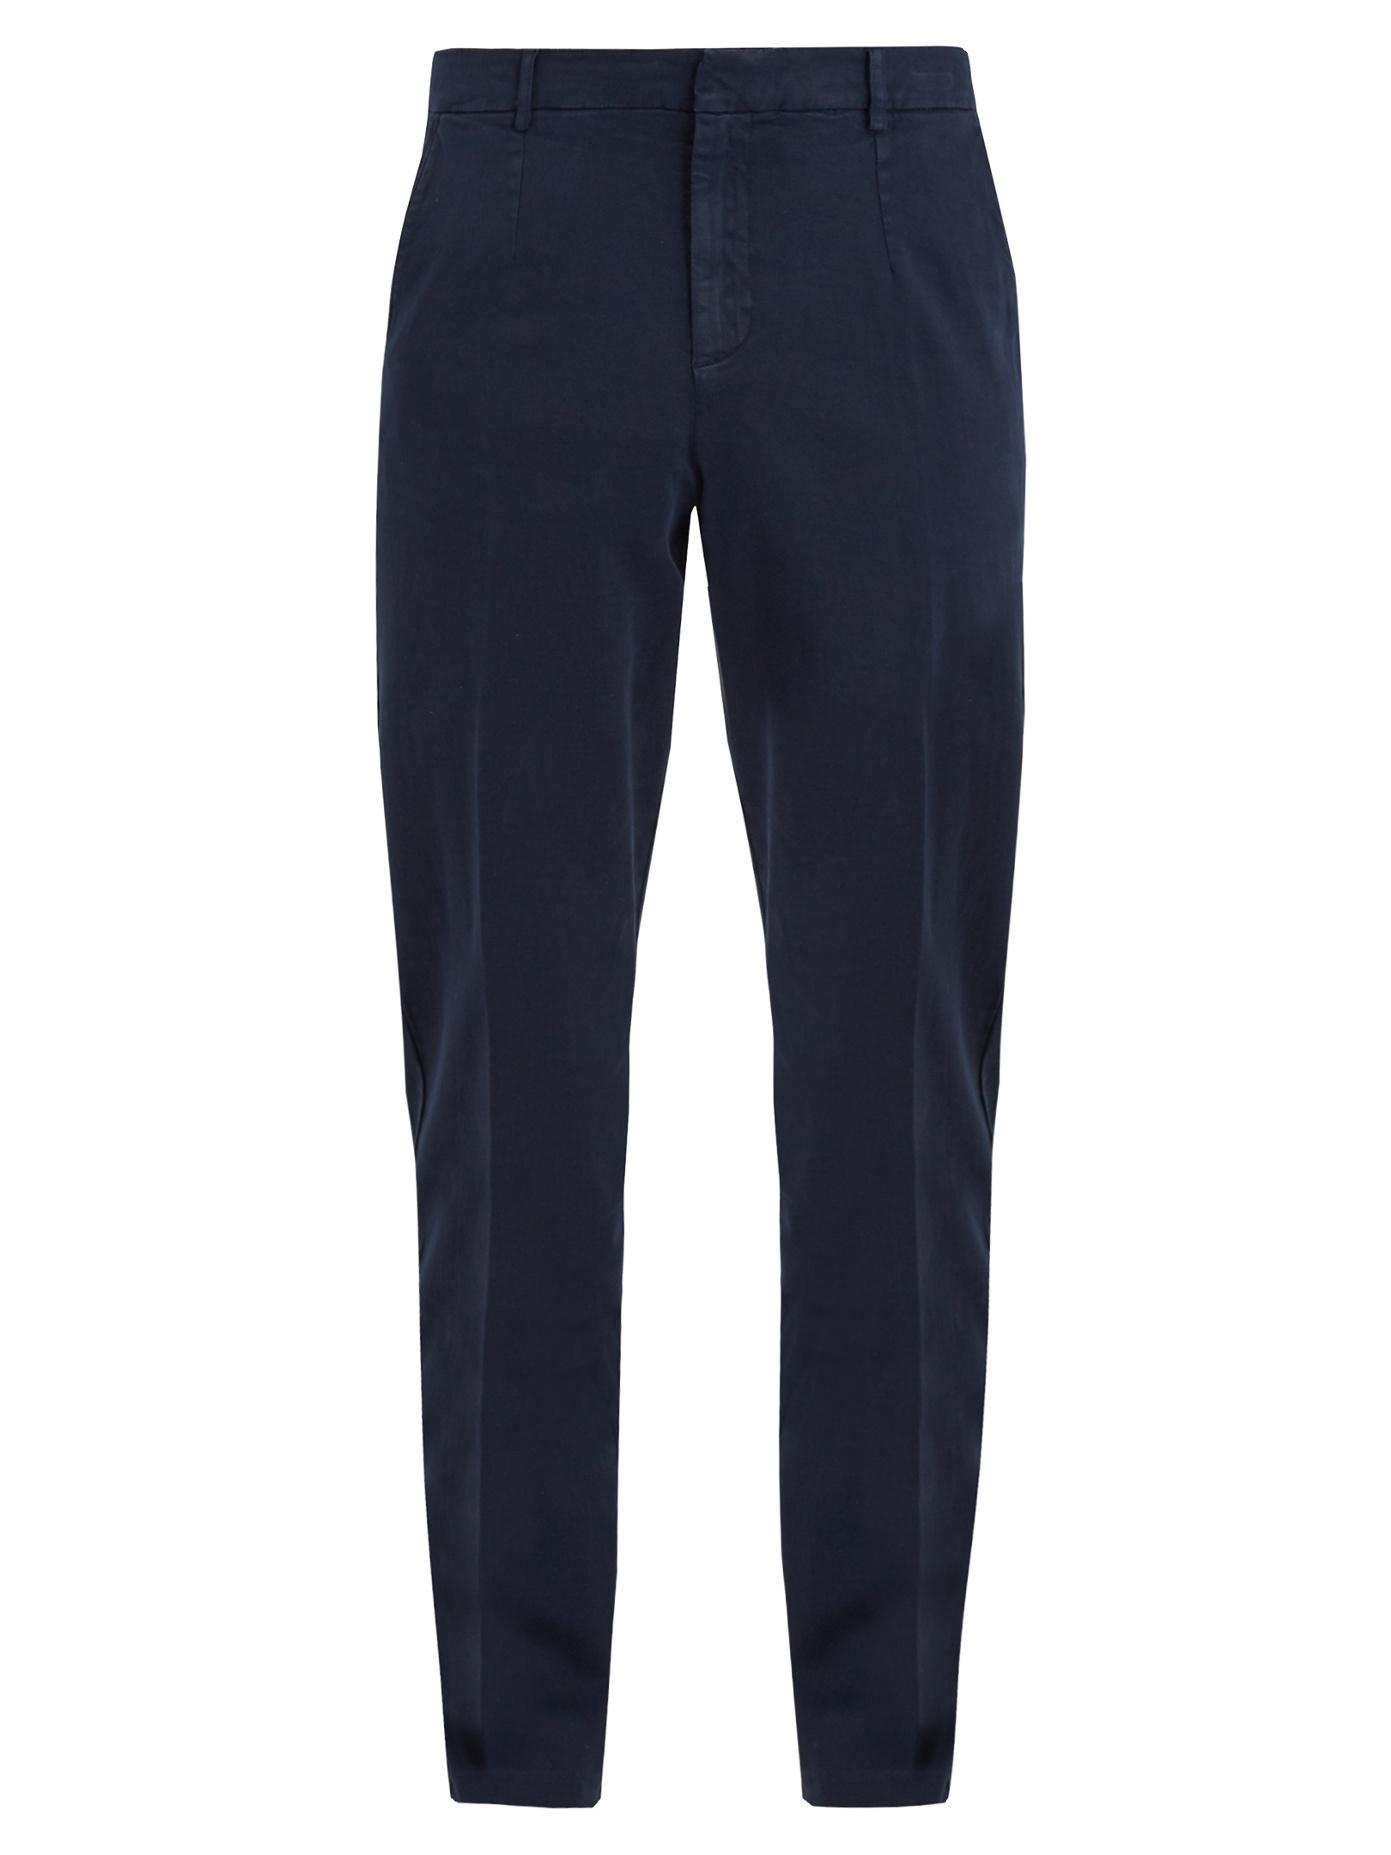 American Vintage Bullington Carrot-Fit Cotton-Blend Chino Trousers In Navy